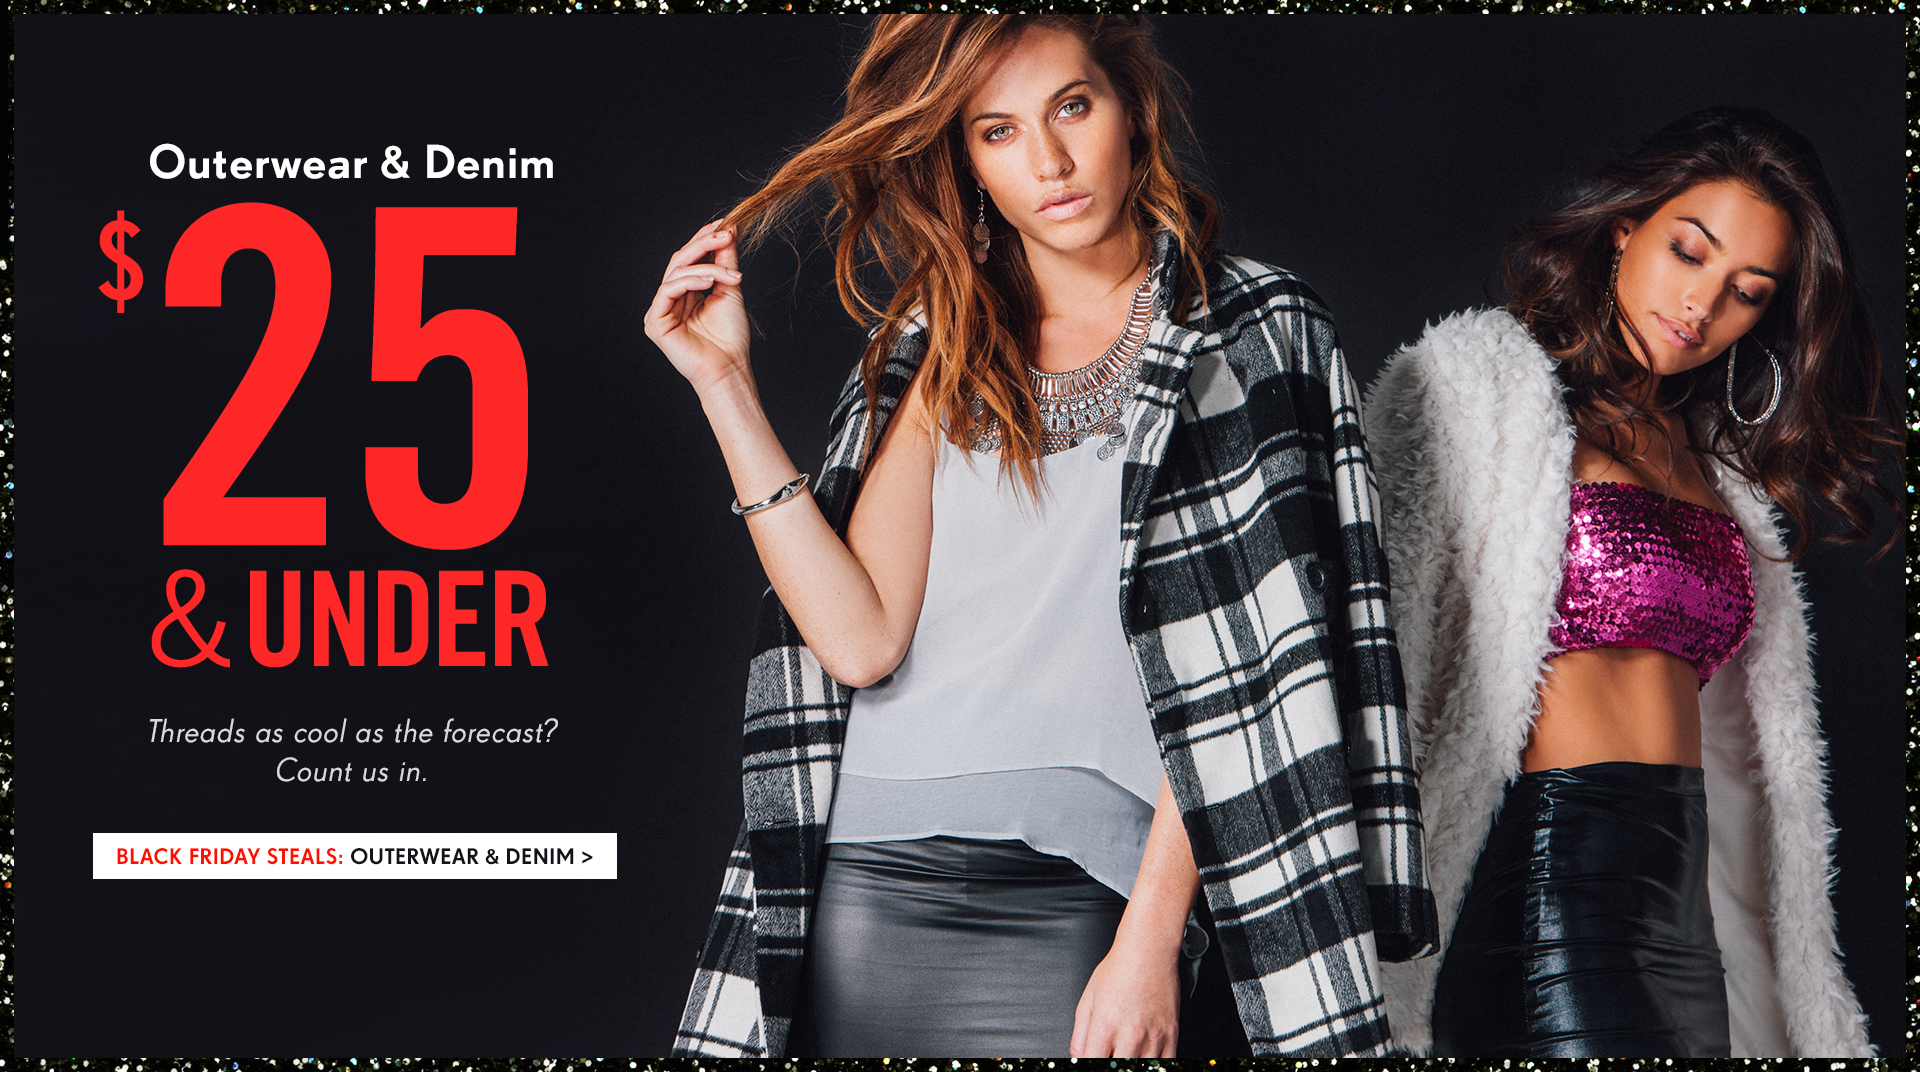 Shop Outerwear & Denim